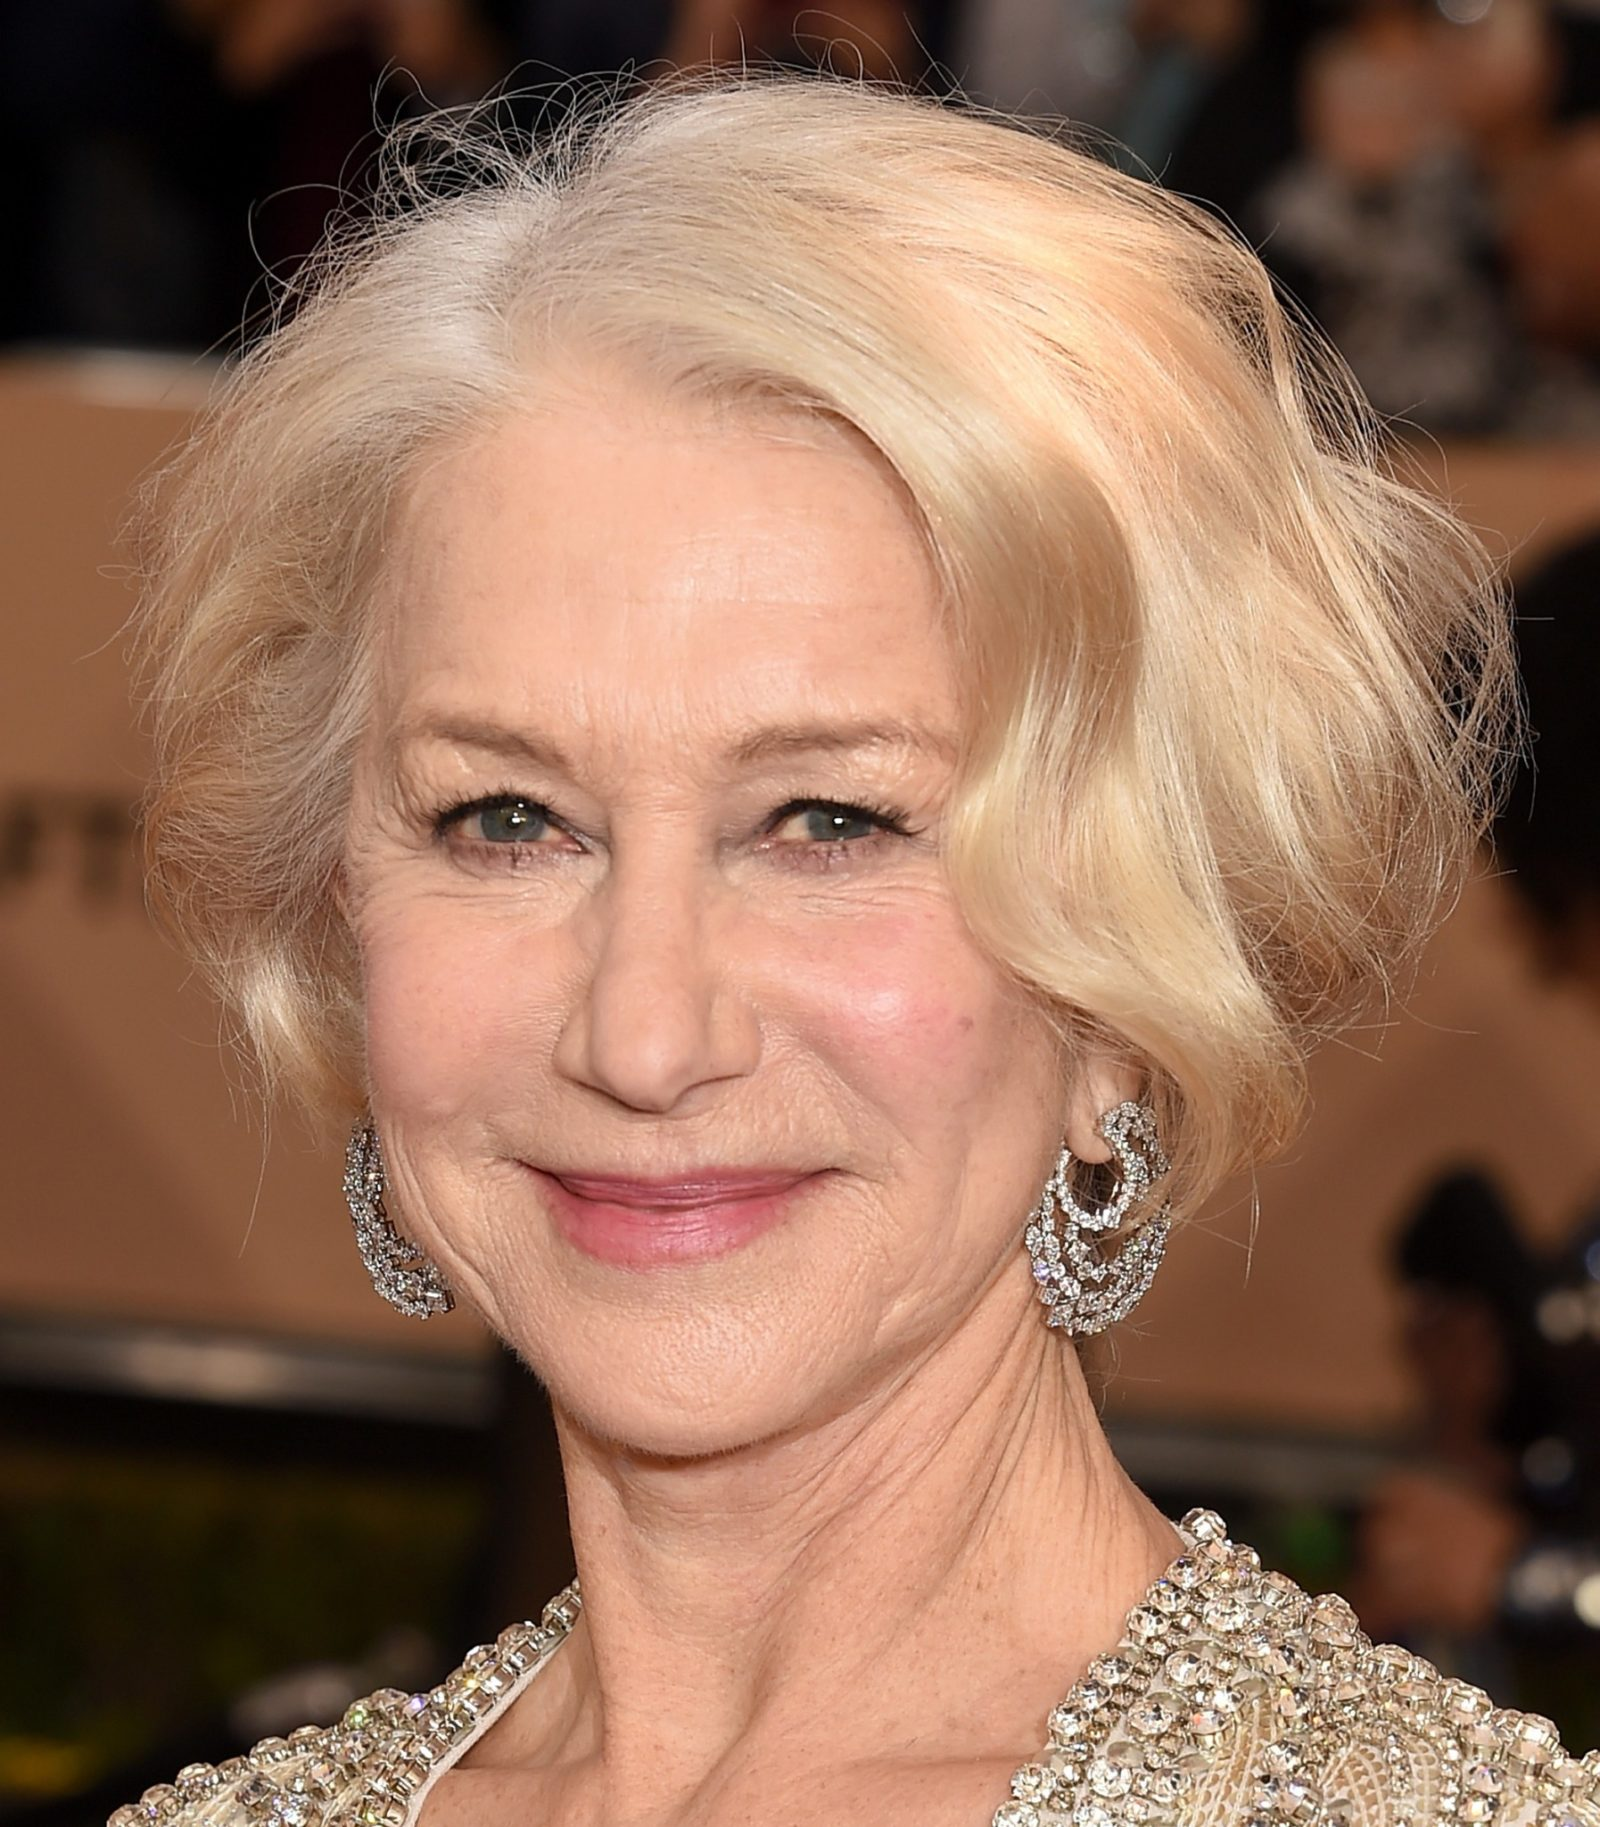 Soft makeup Helen Mirren SAG Awards